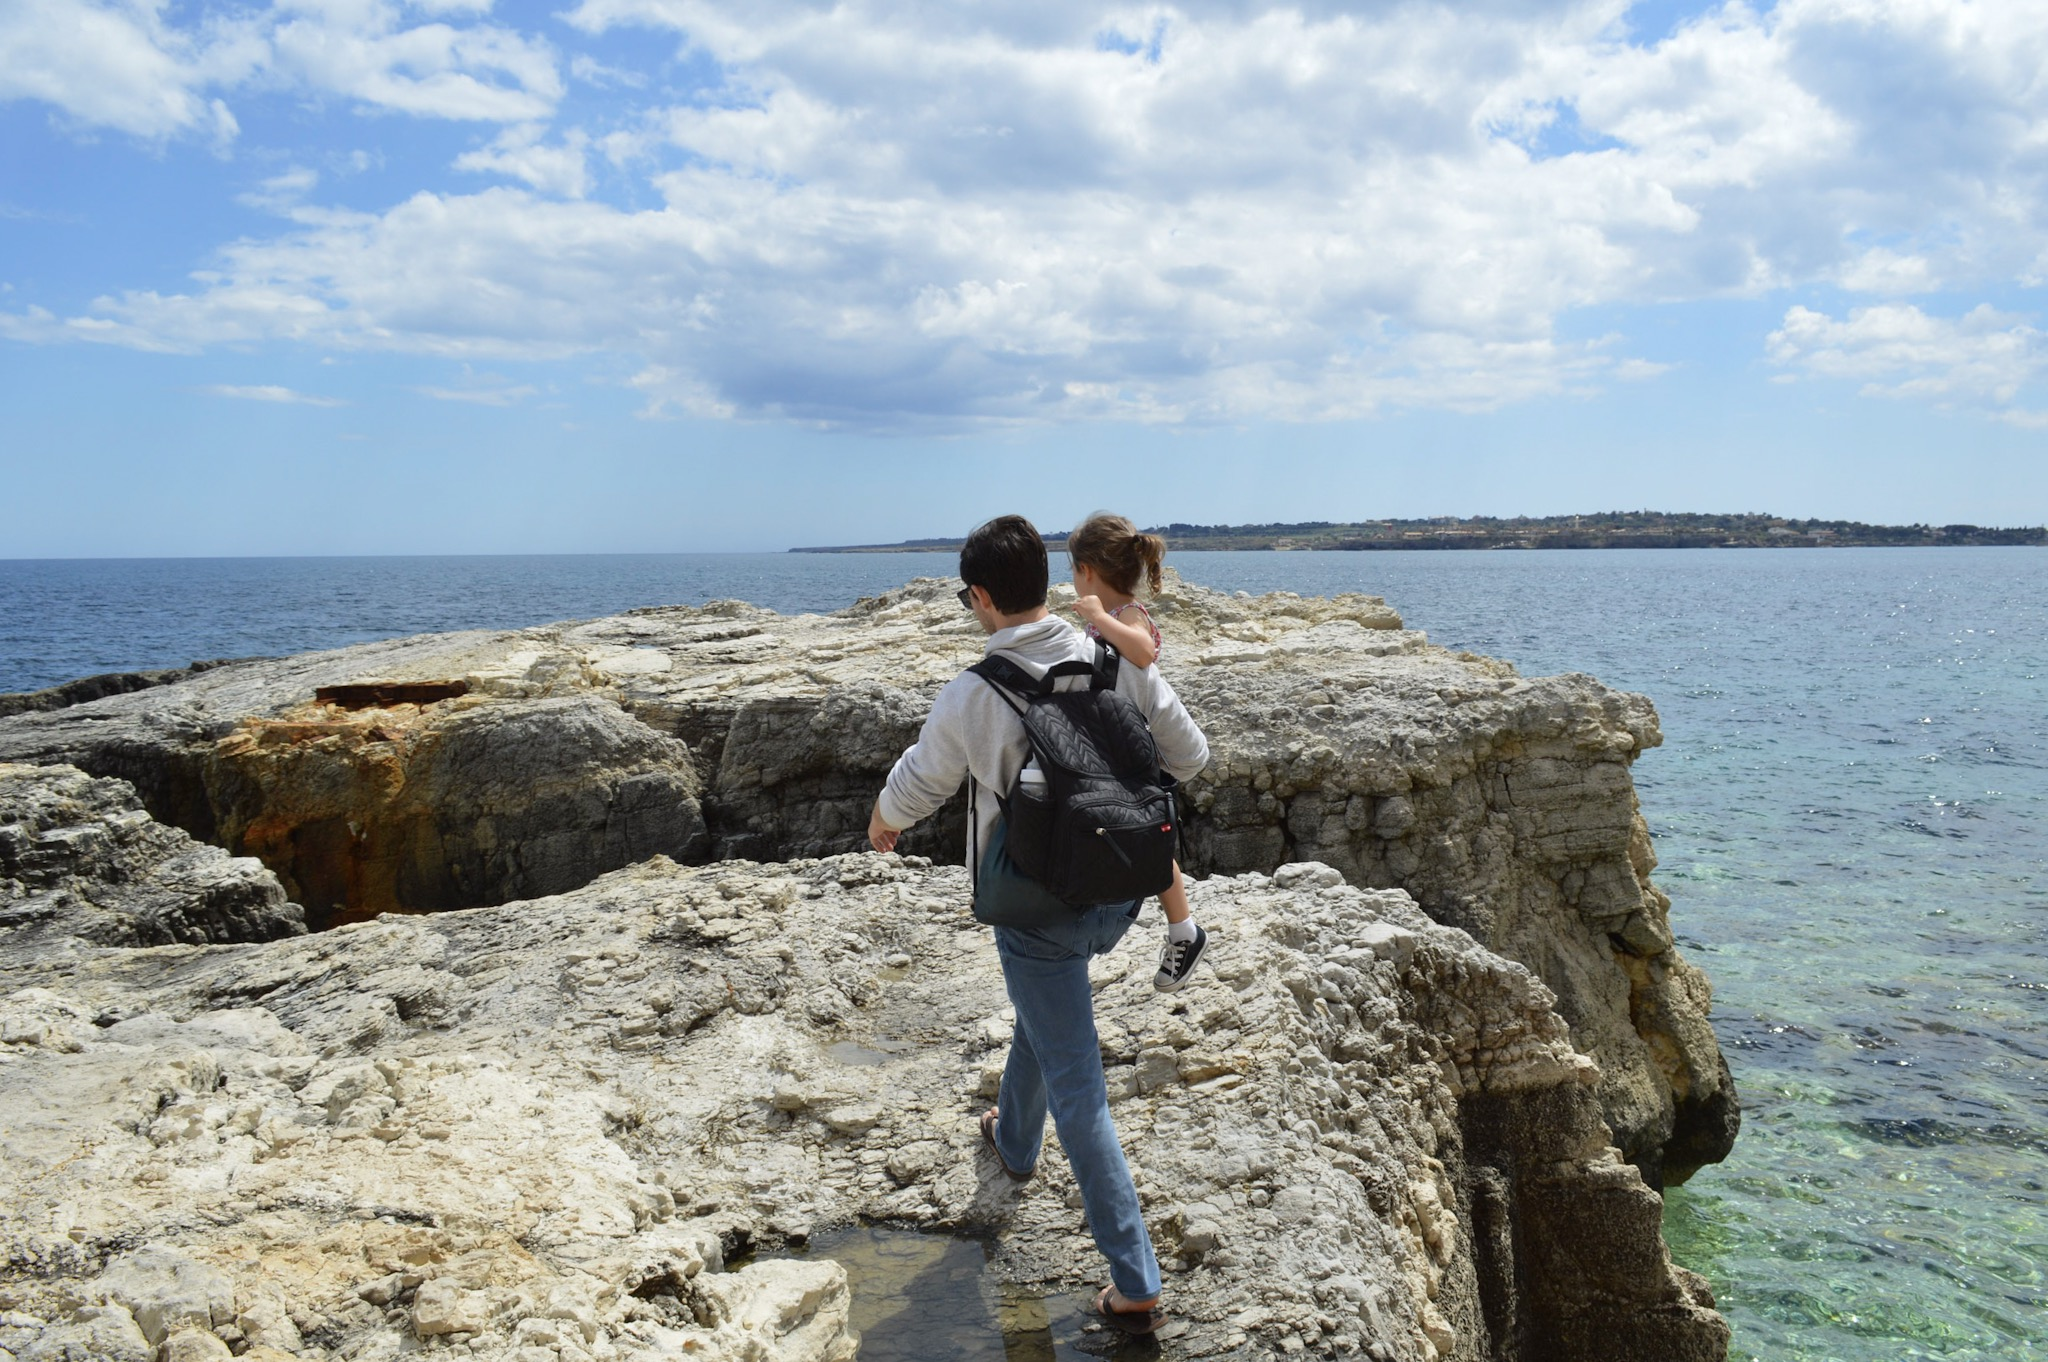 Day trip to Siracusa